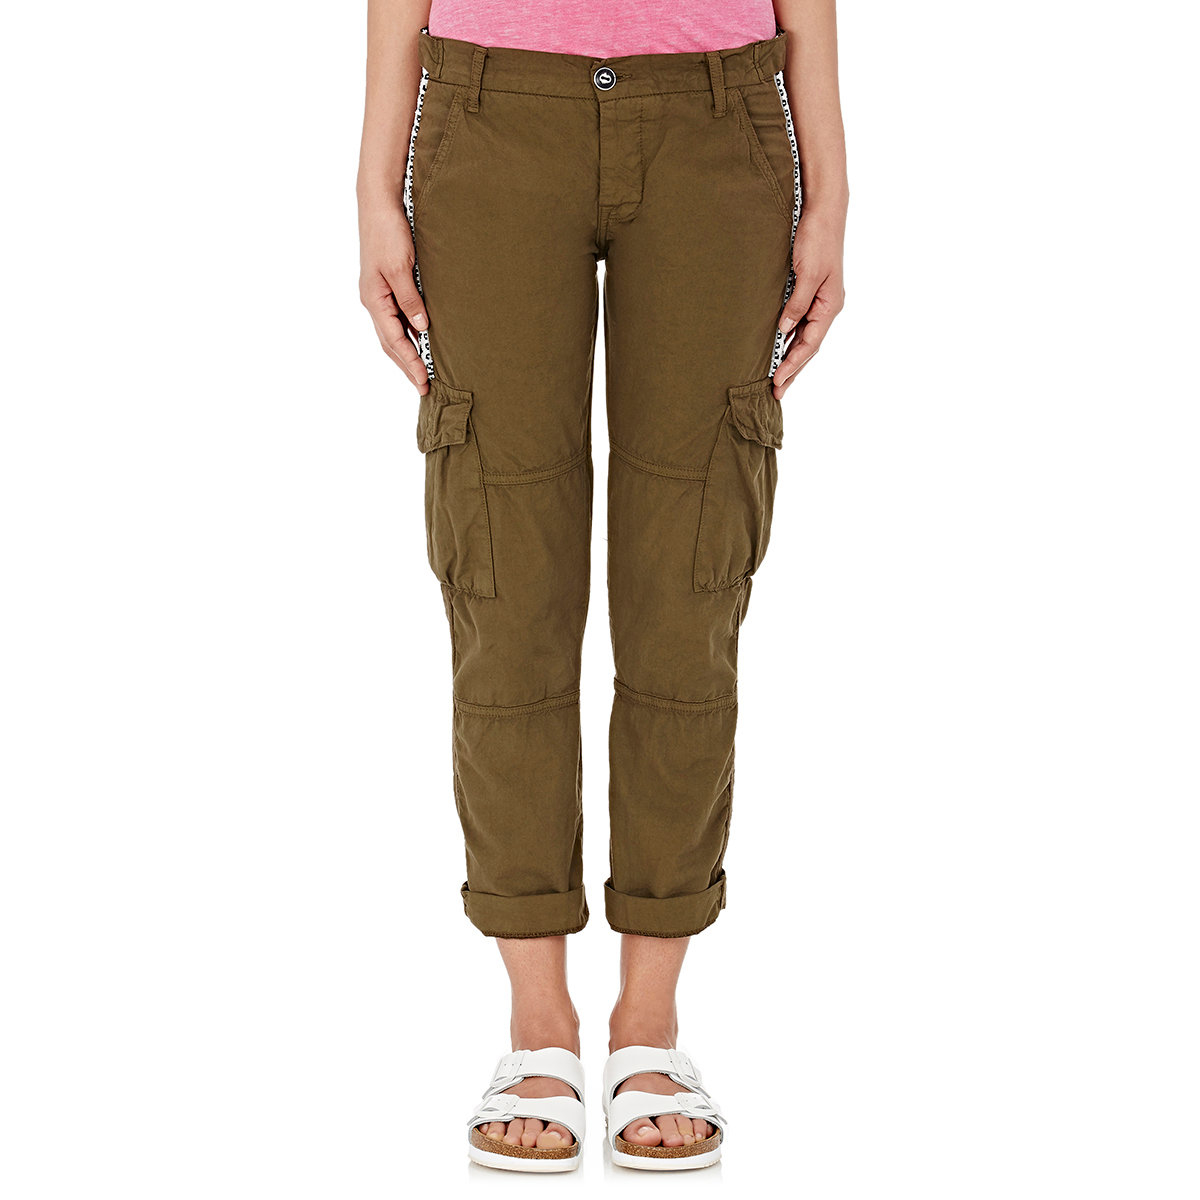 Fantastic New Womens Ladies Khaki Green Brown Wide Leg Combat Trousers Cargo Jeans Pants